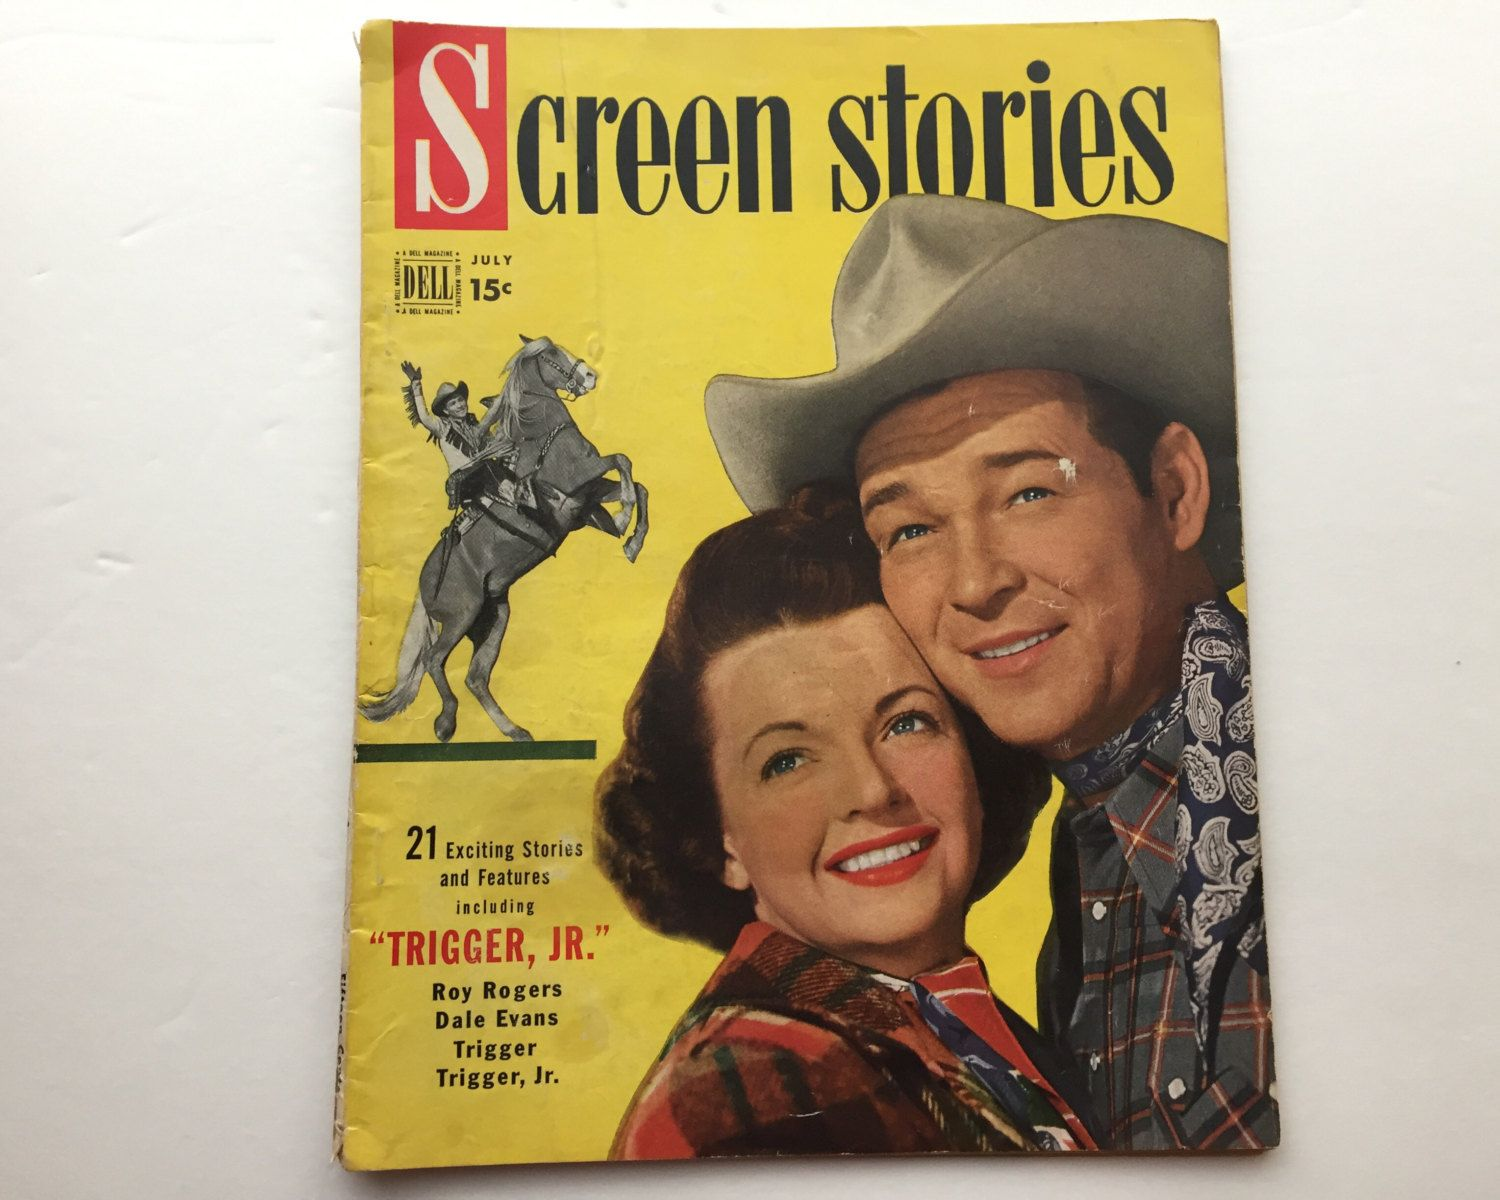 Screen Stories Magazine July 1950 - Cover Roy Rogers and Dale Evans - Vintage Movie Magazine - Inside Trigger Jr. & Father of the Bride by BagBagSydVintage on Etsy